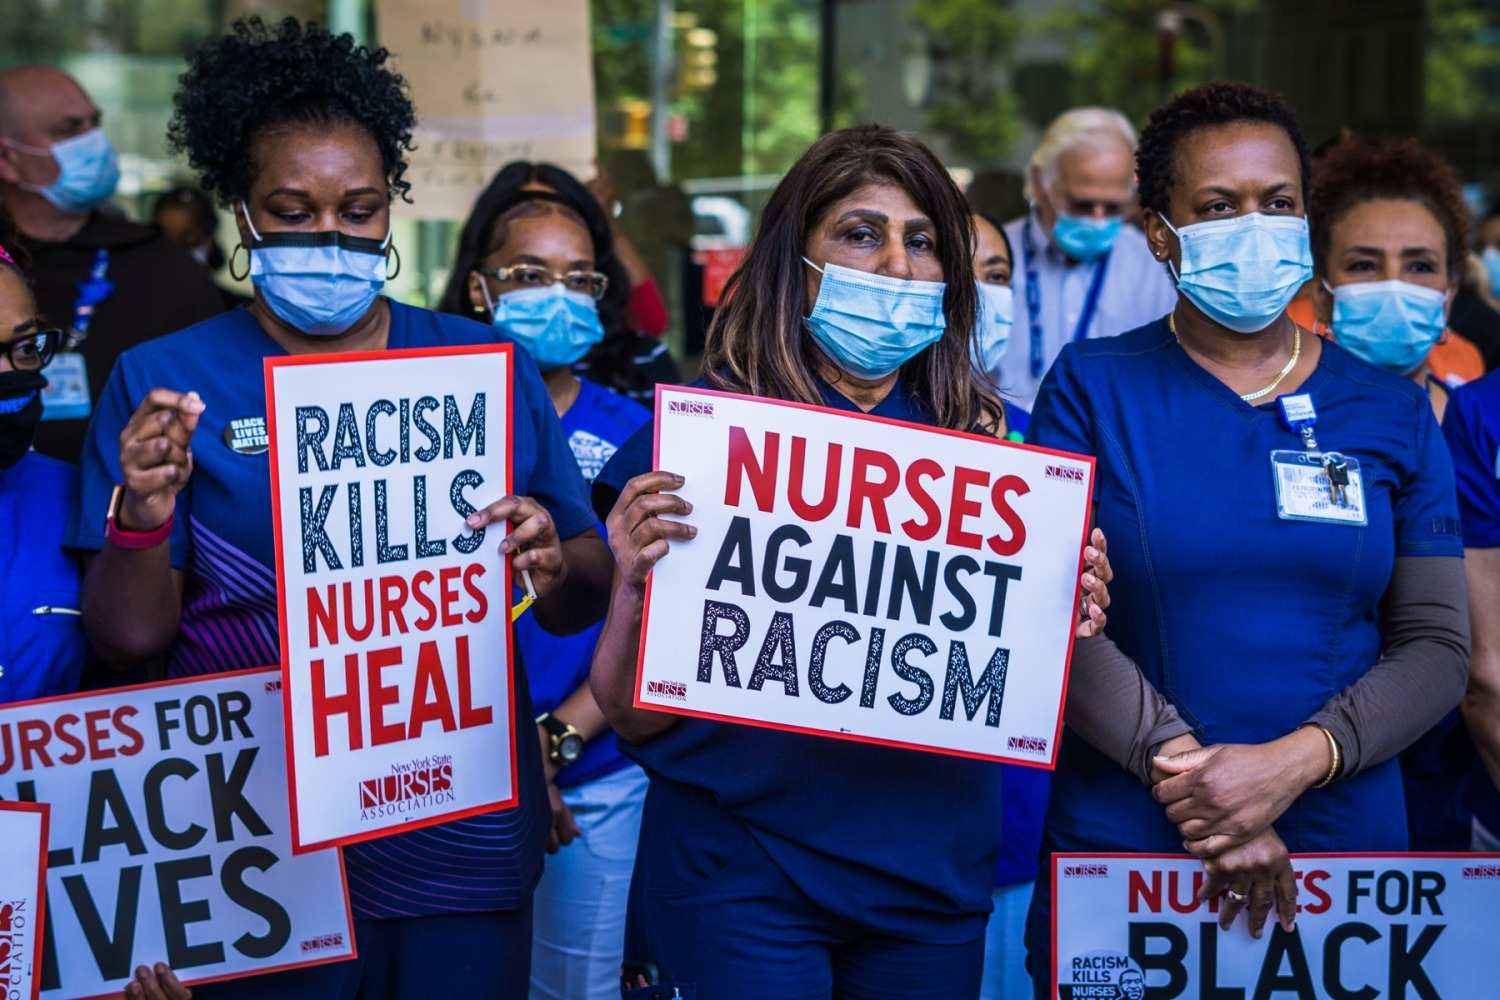 Nurses took a stand for racial justice outside of Bellevue hospital and other New York City hospitals on June 9th, 2020.